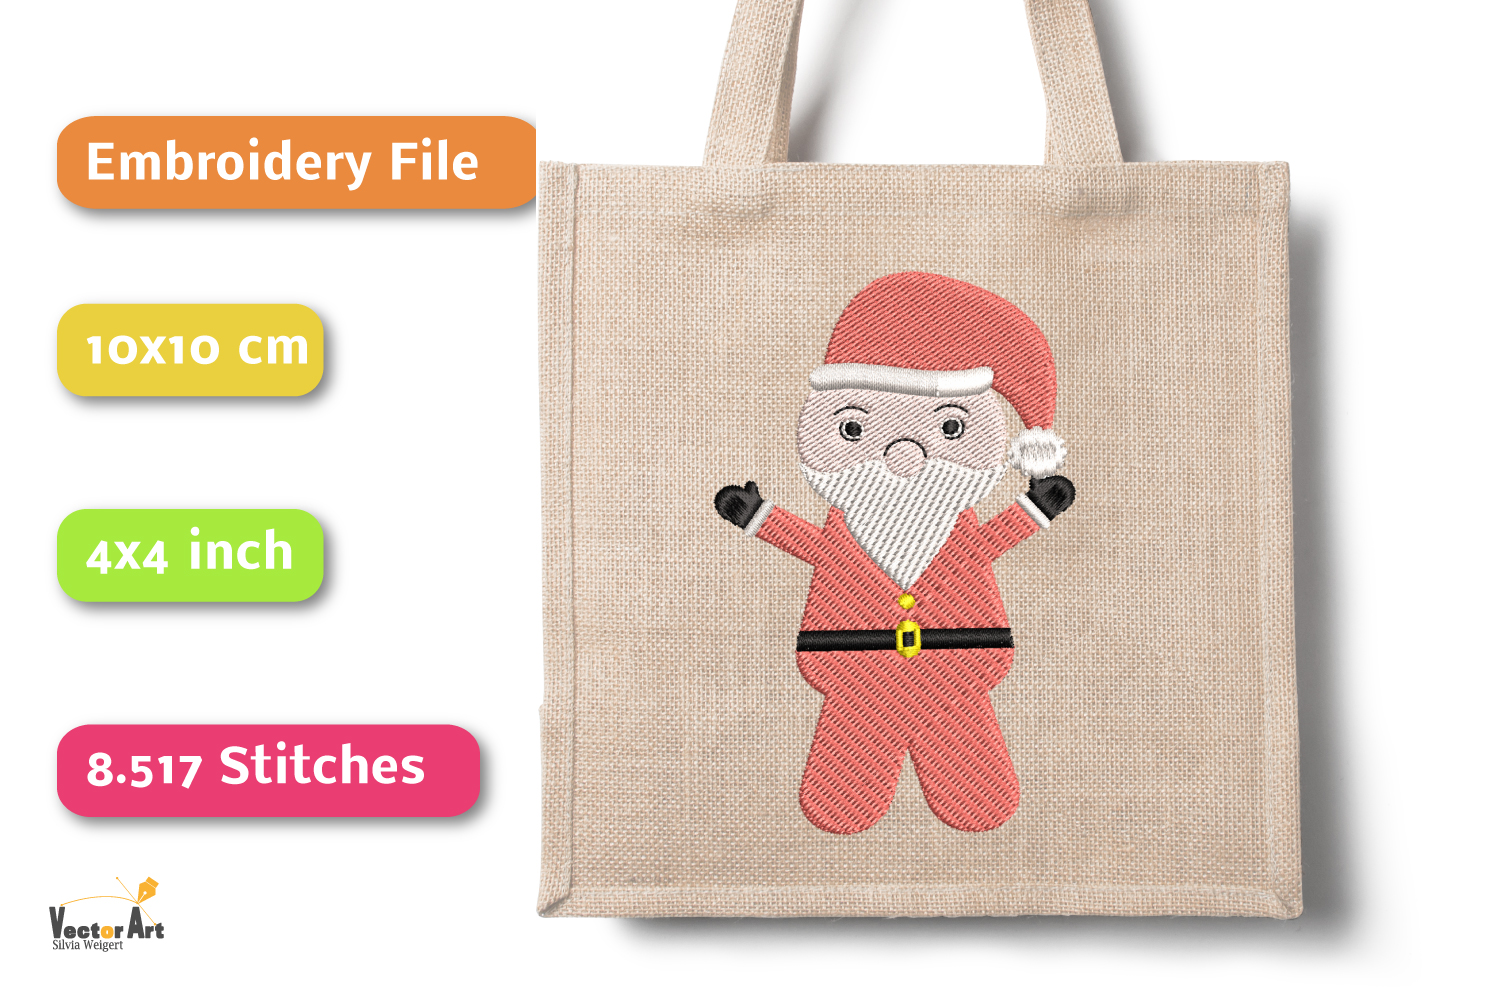 Santa Claus - Embroidery File - 4x4 inch example image 3